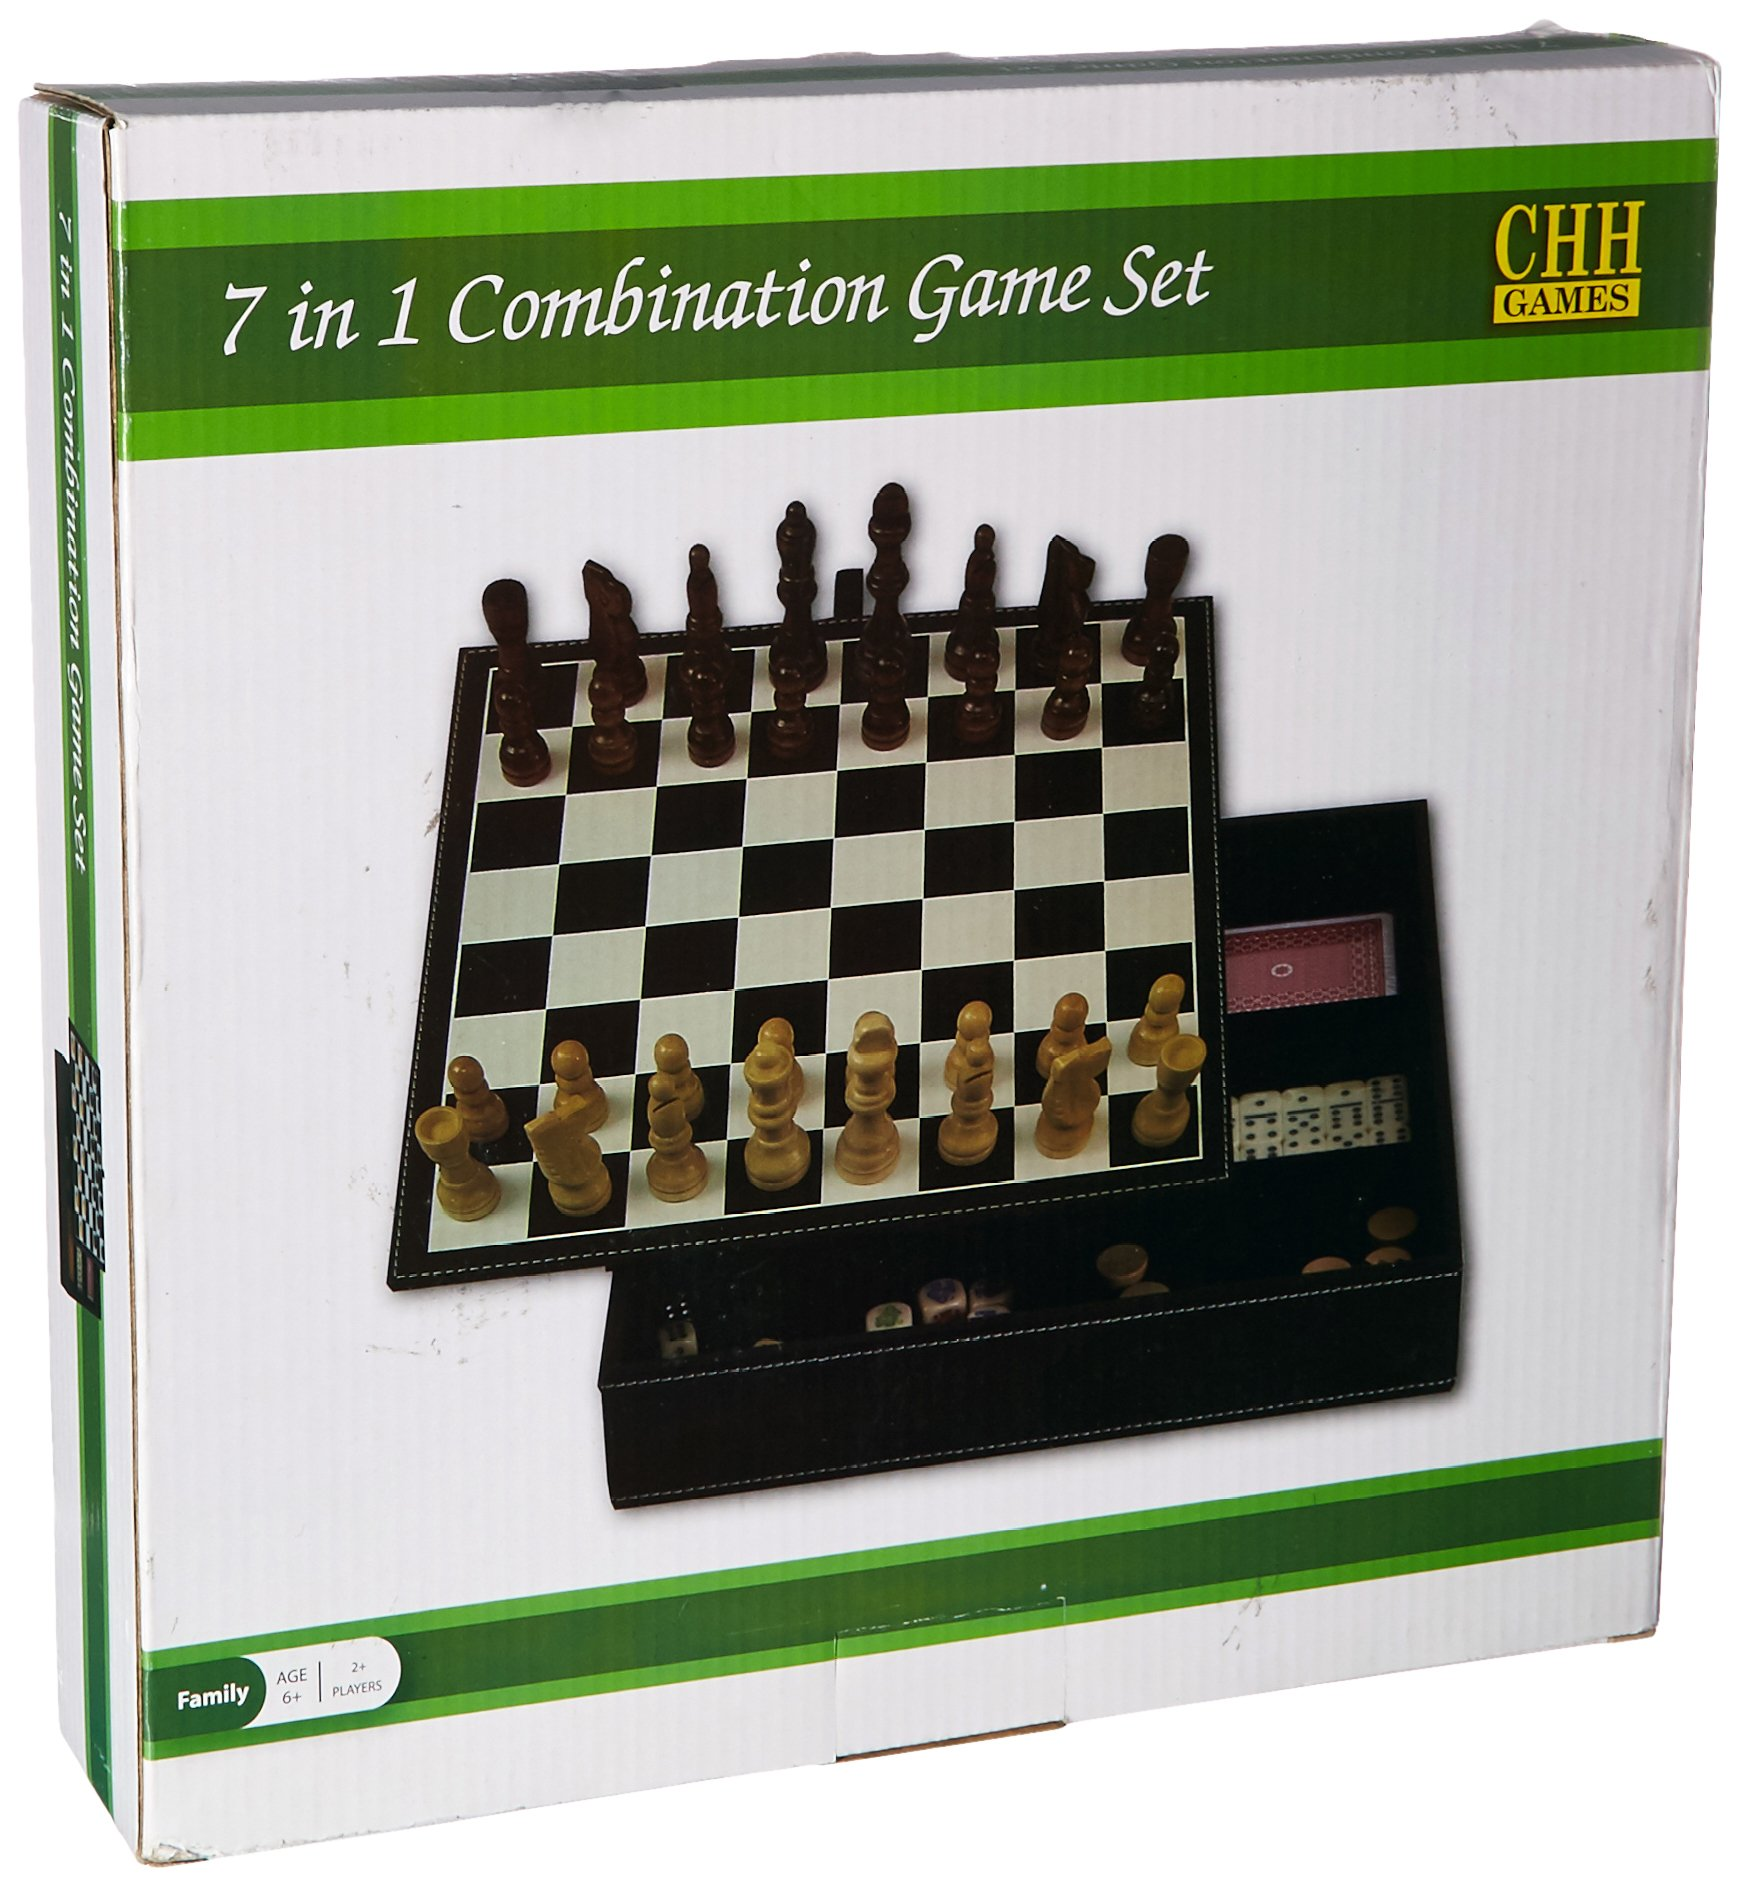 CHH Faux Leather Game Set with A Variety of Tabletop Games, Black